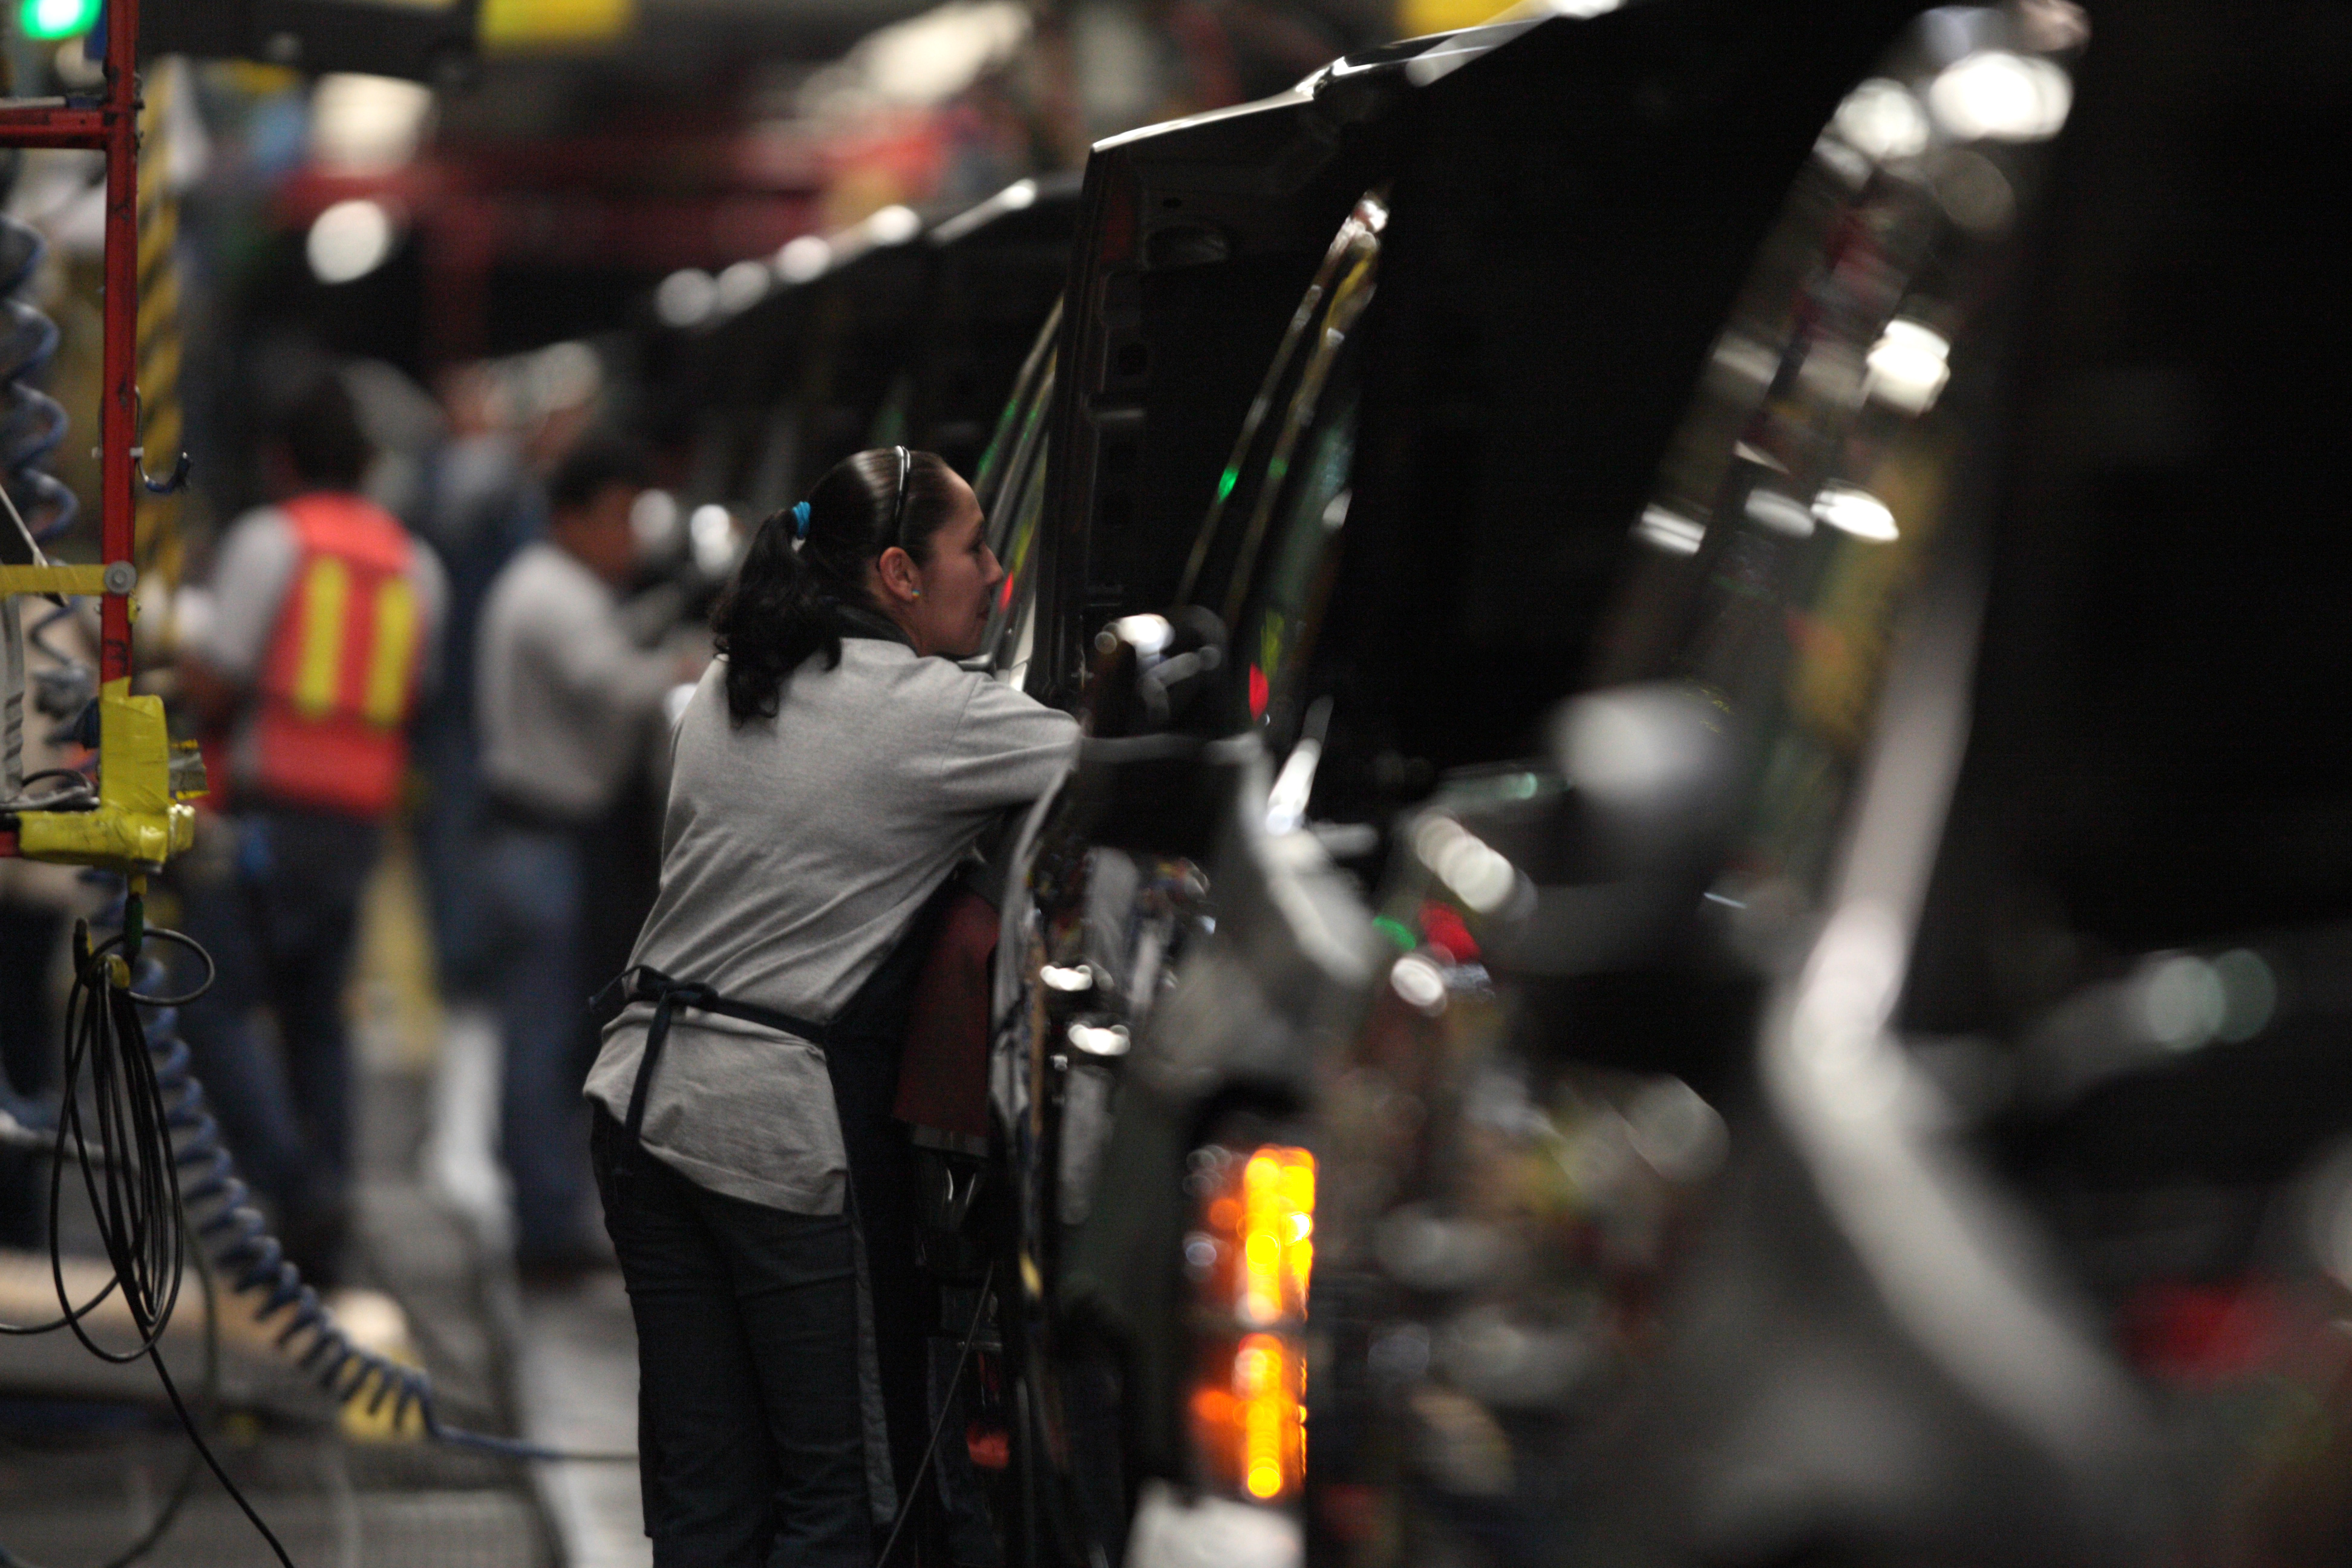 FILE - Factory employees are seen working in the plant of General Motors in the city of Silao, in the state of Guanajuato, Mexico, Nov. 25, 2008.